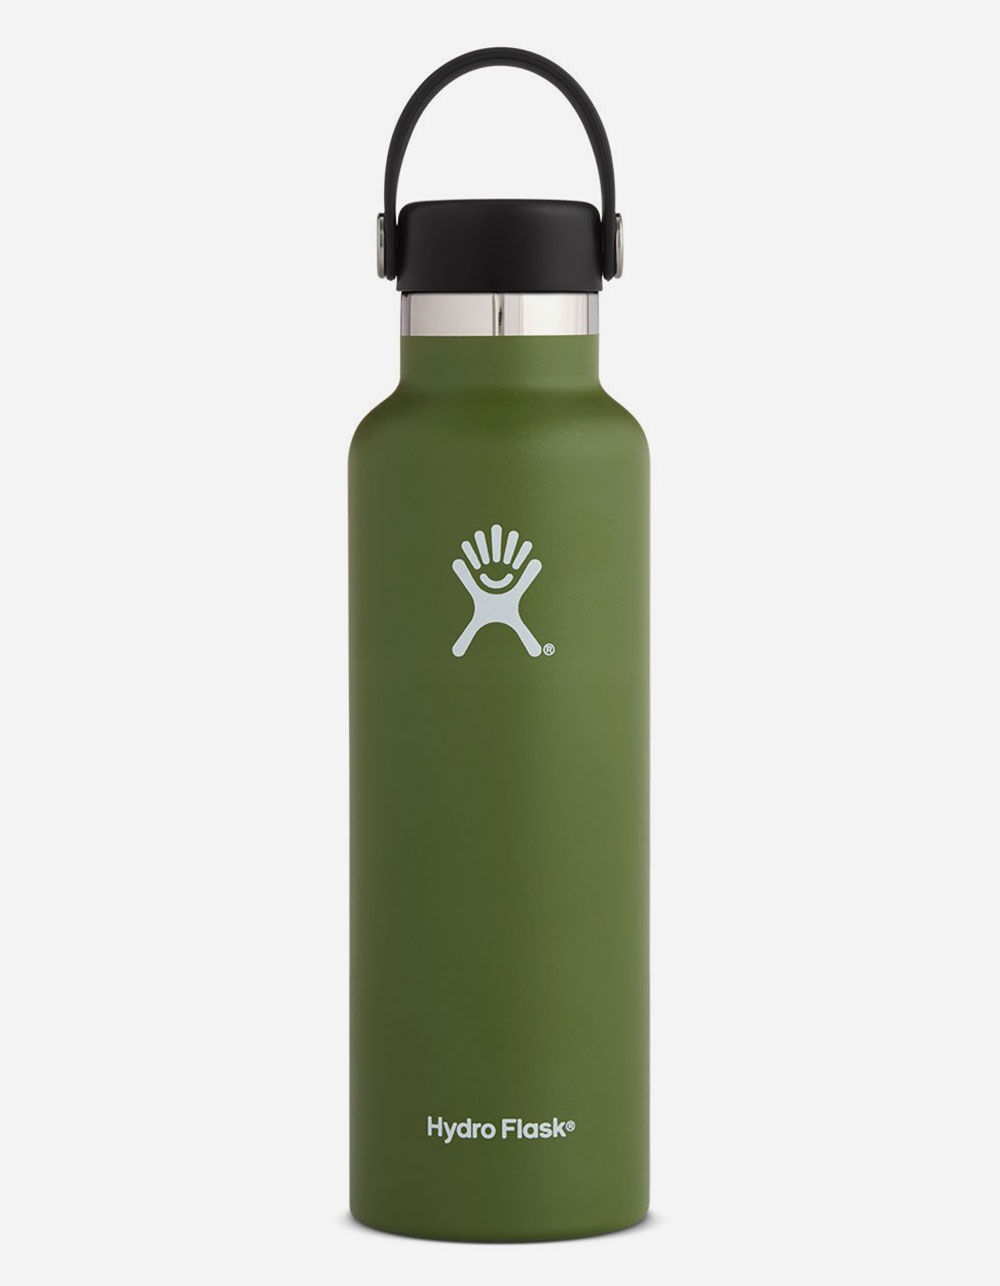 HYDRO FLASK Olive 21oz Standard Mouth Water Bottle